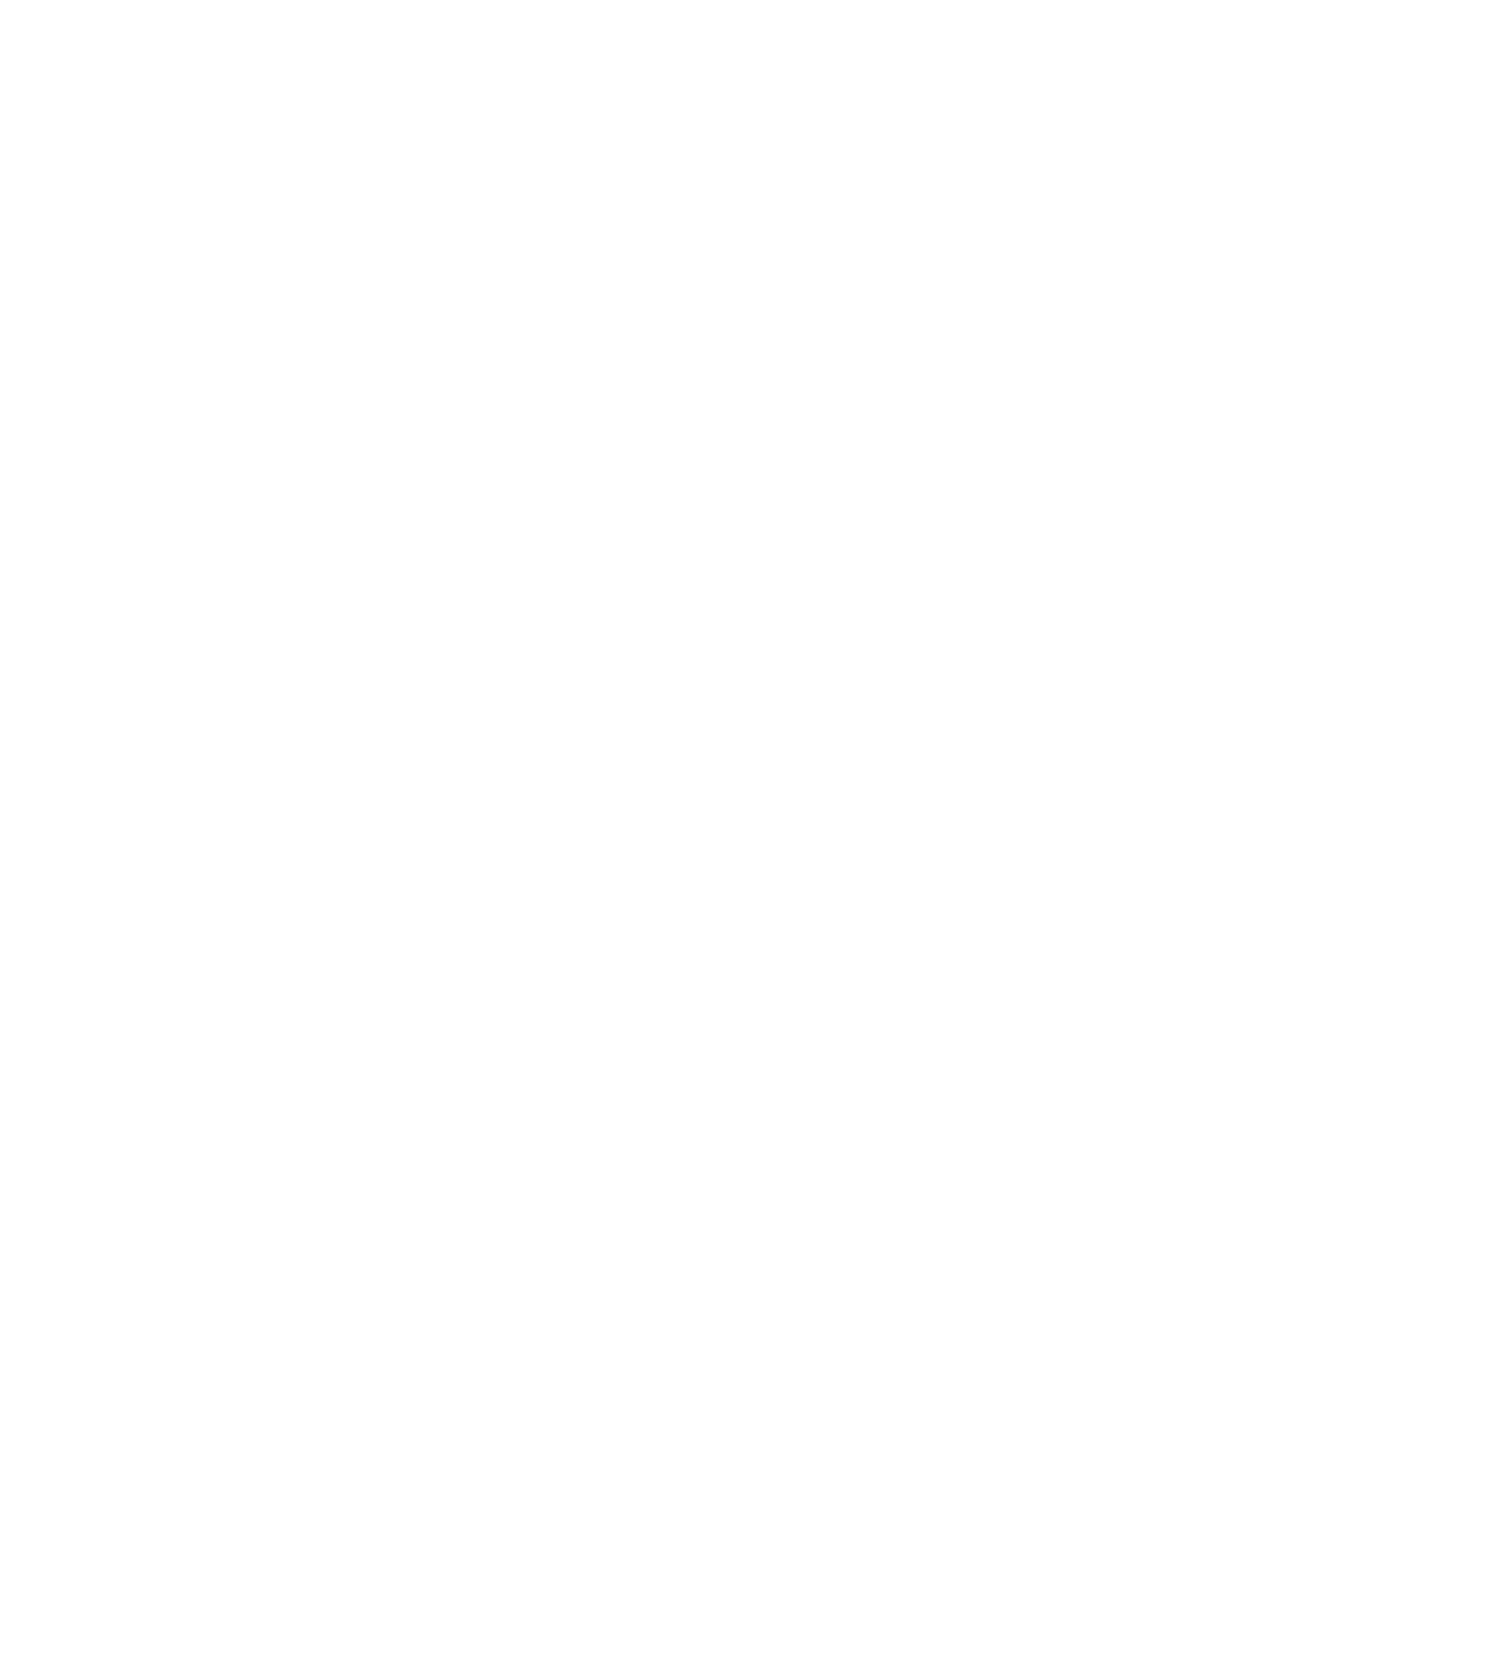 FRAMED Awards